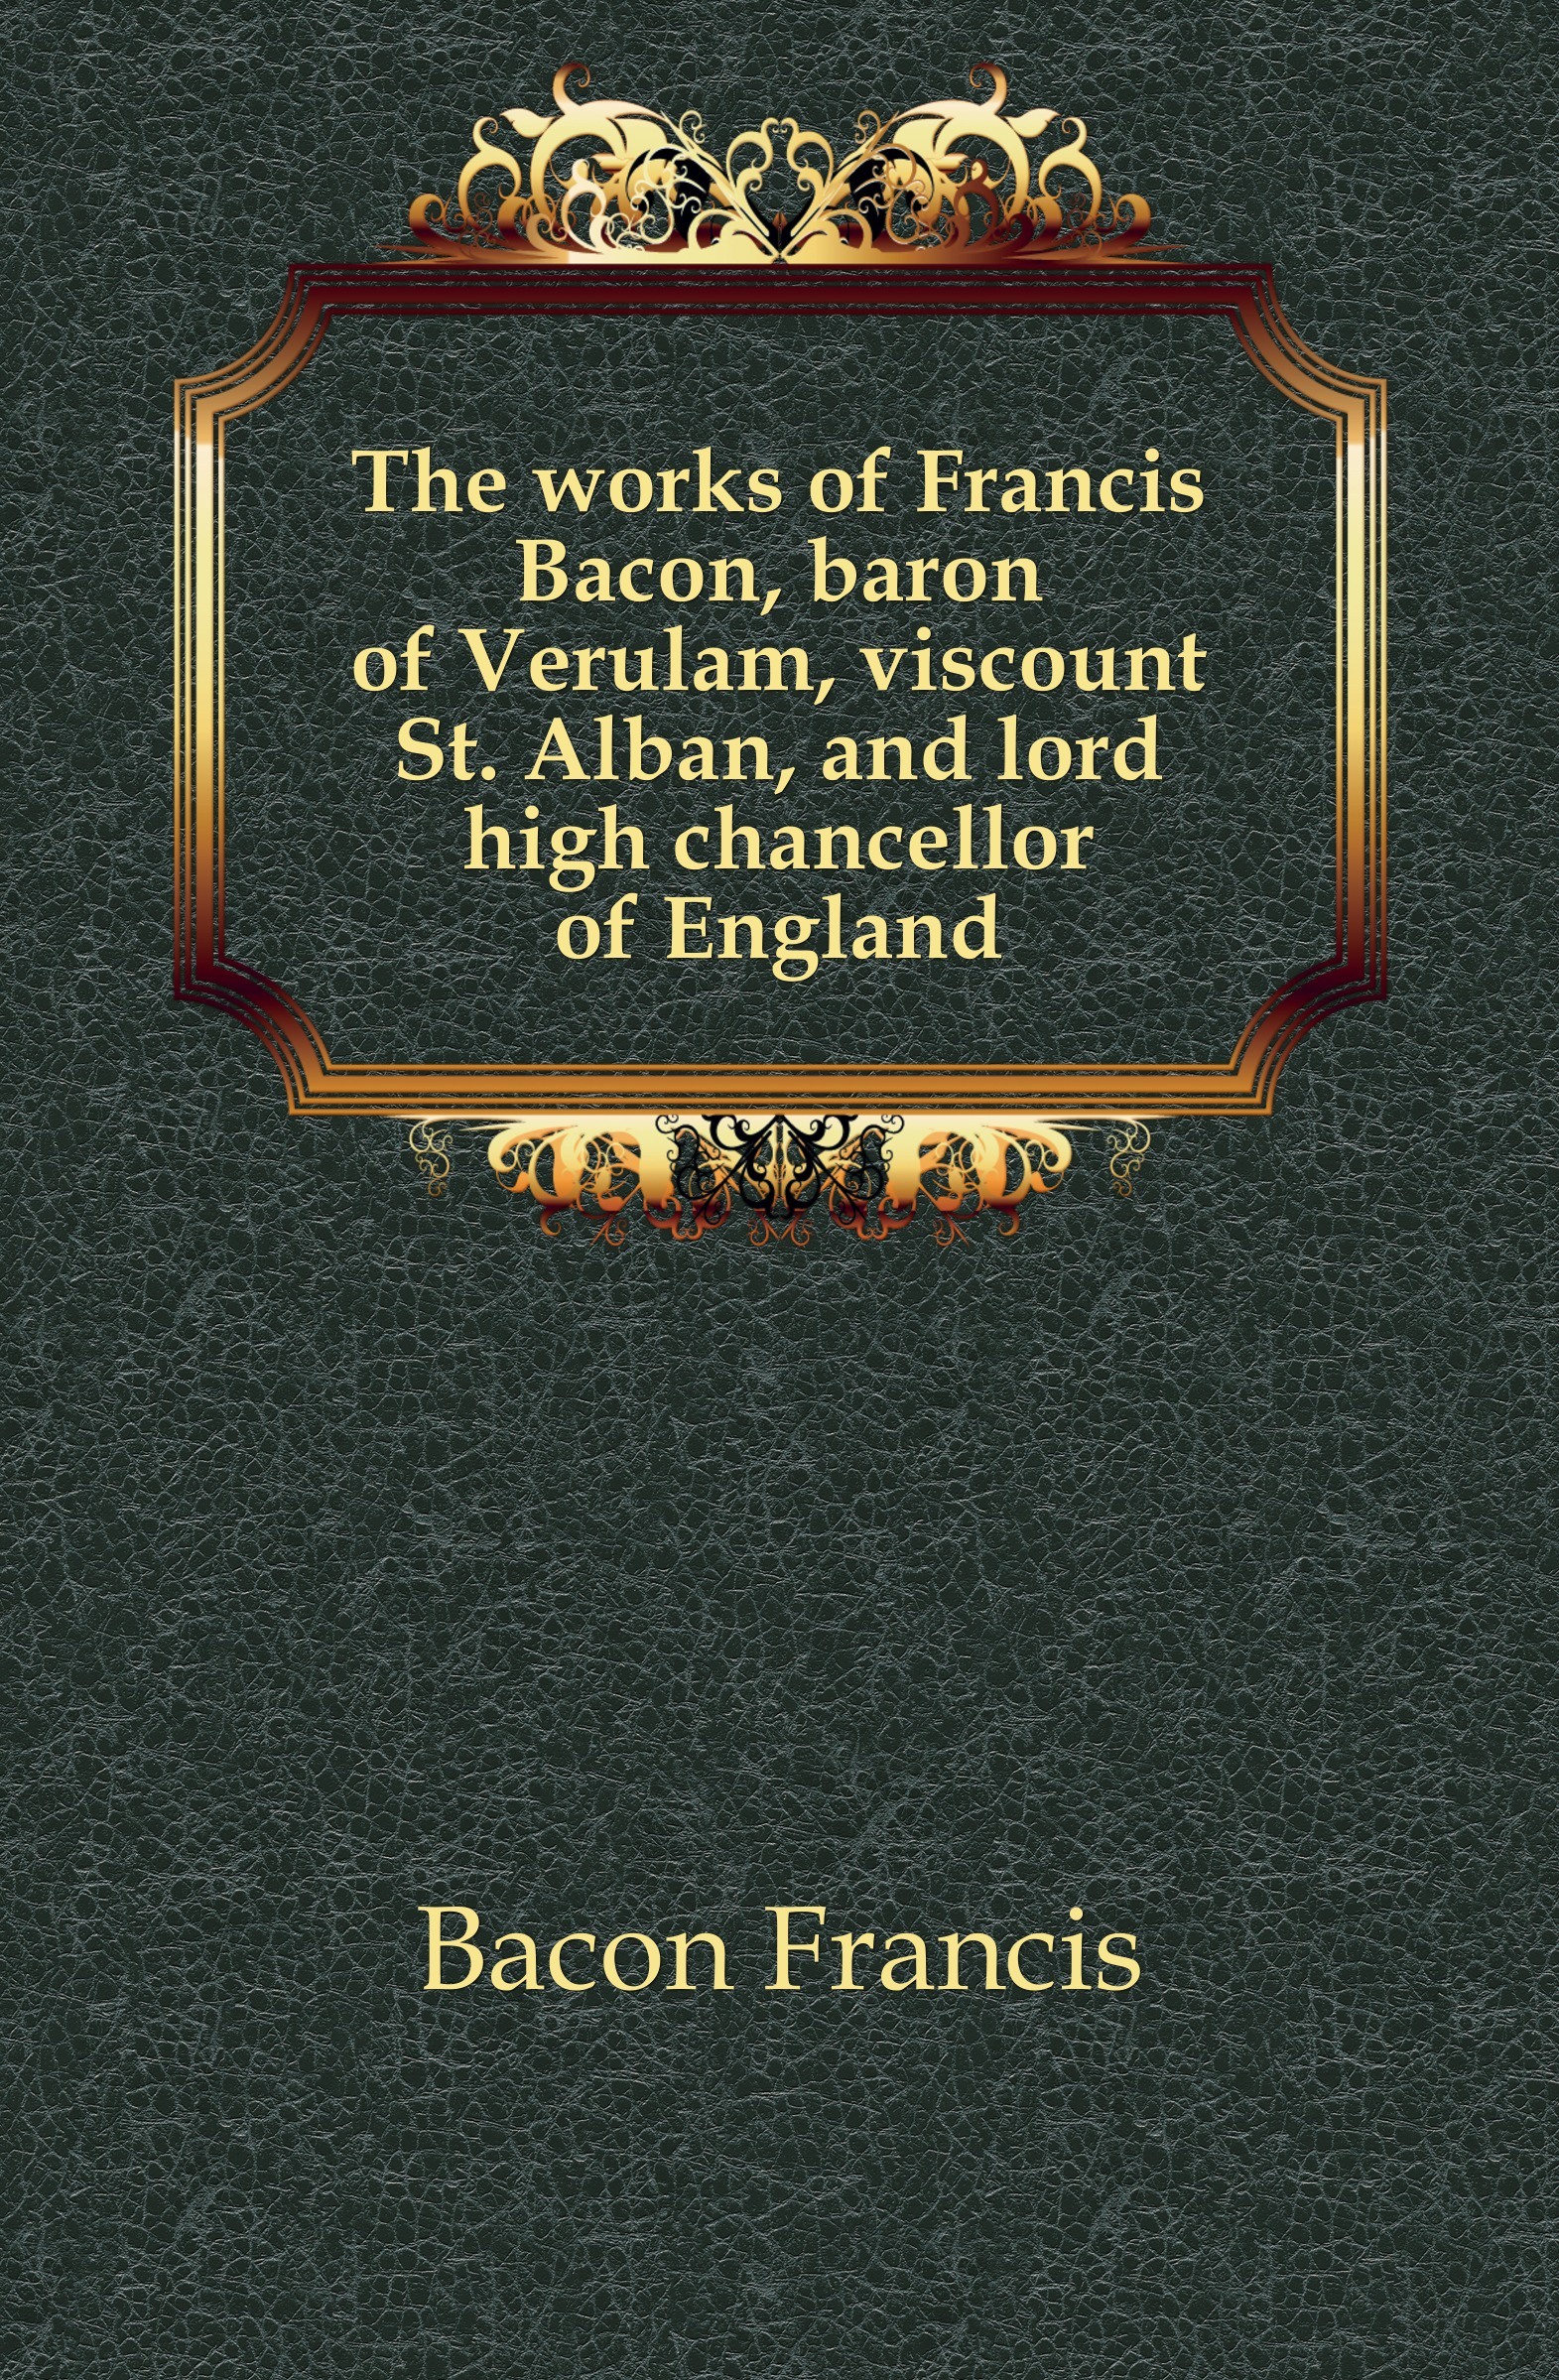 Фрэнсис Бэкон The works of Francis Bacon, baron of Verulam, viscount St. Alban, and lord high chancellor of England w stone booth some acrostic signatures of francis bacon baron verulam of verulam viscount st alban together with some others